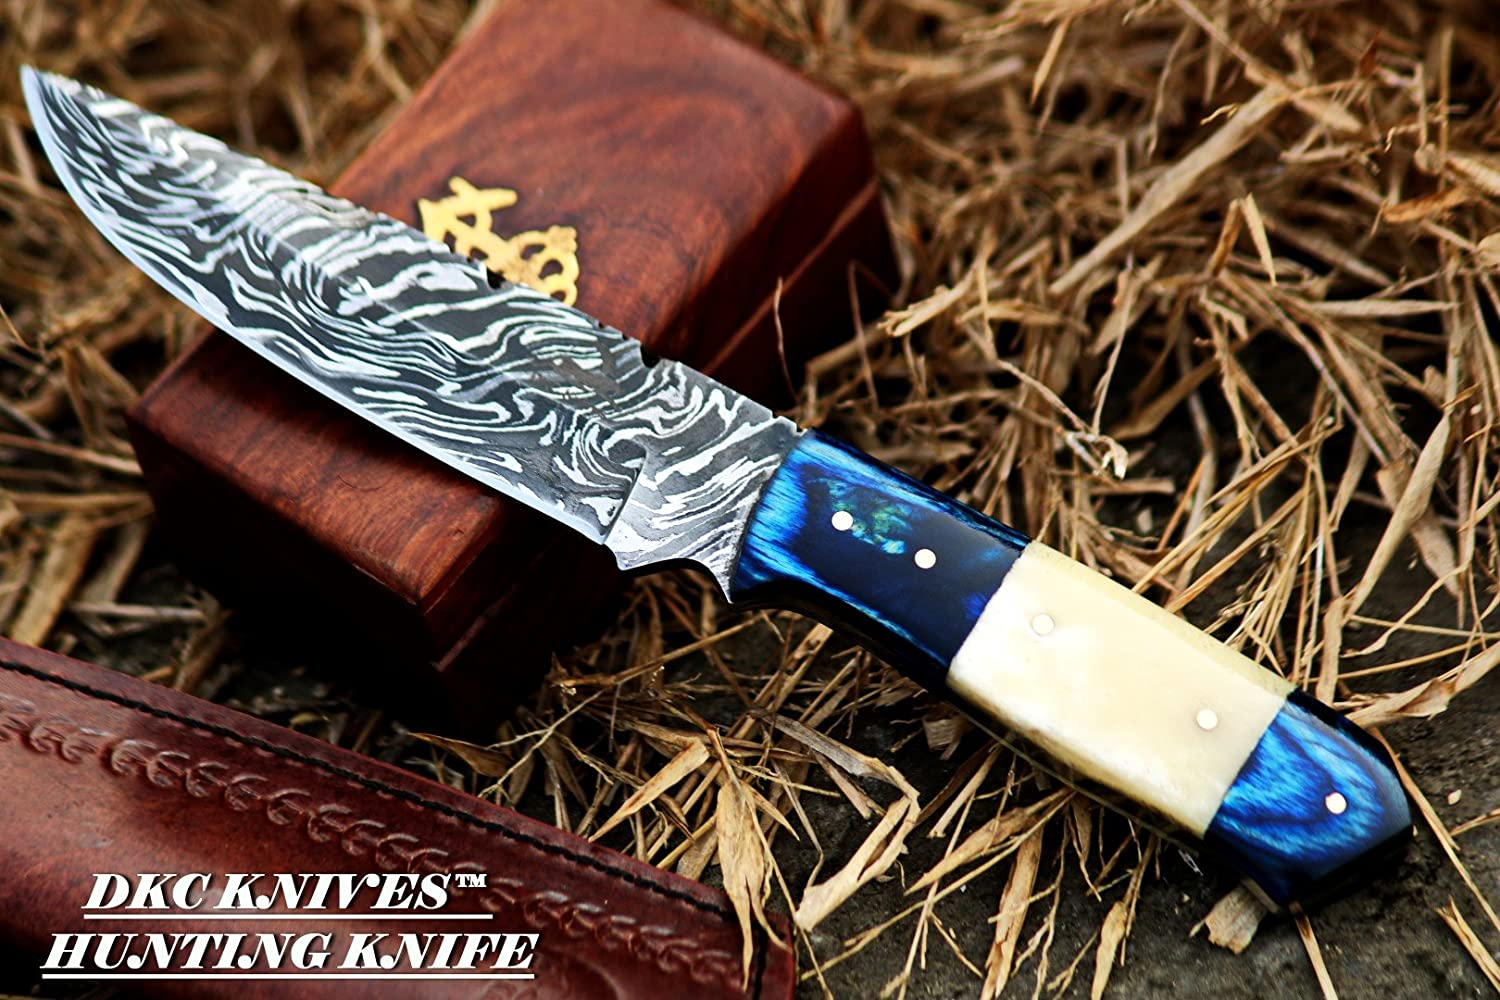 10 6 18 DKC-521-HT-DS Blue Moon Hunter Damascus Steel Knife Handmade Knife Fixed Blade 7 oz 9 Long